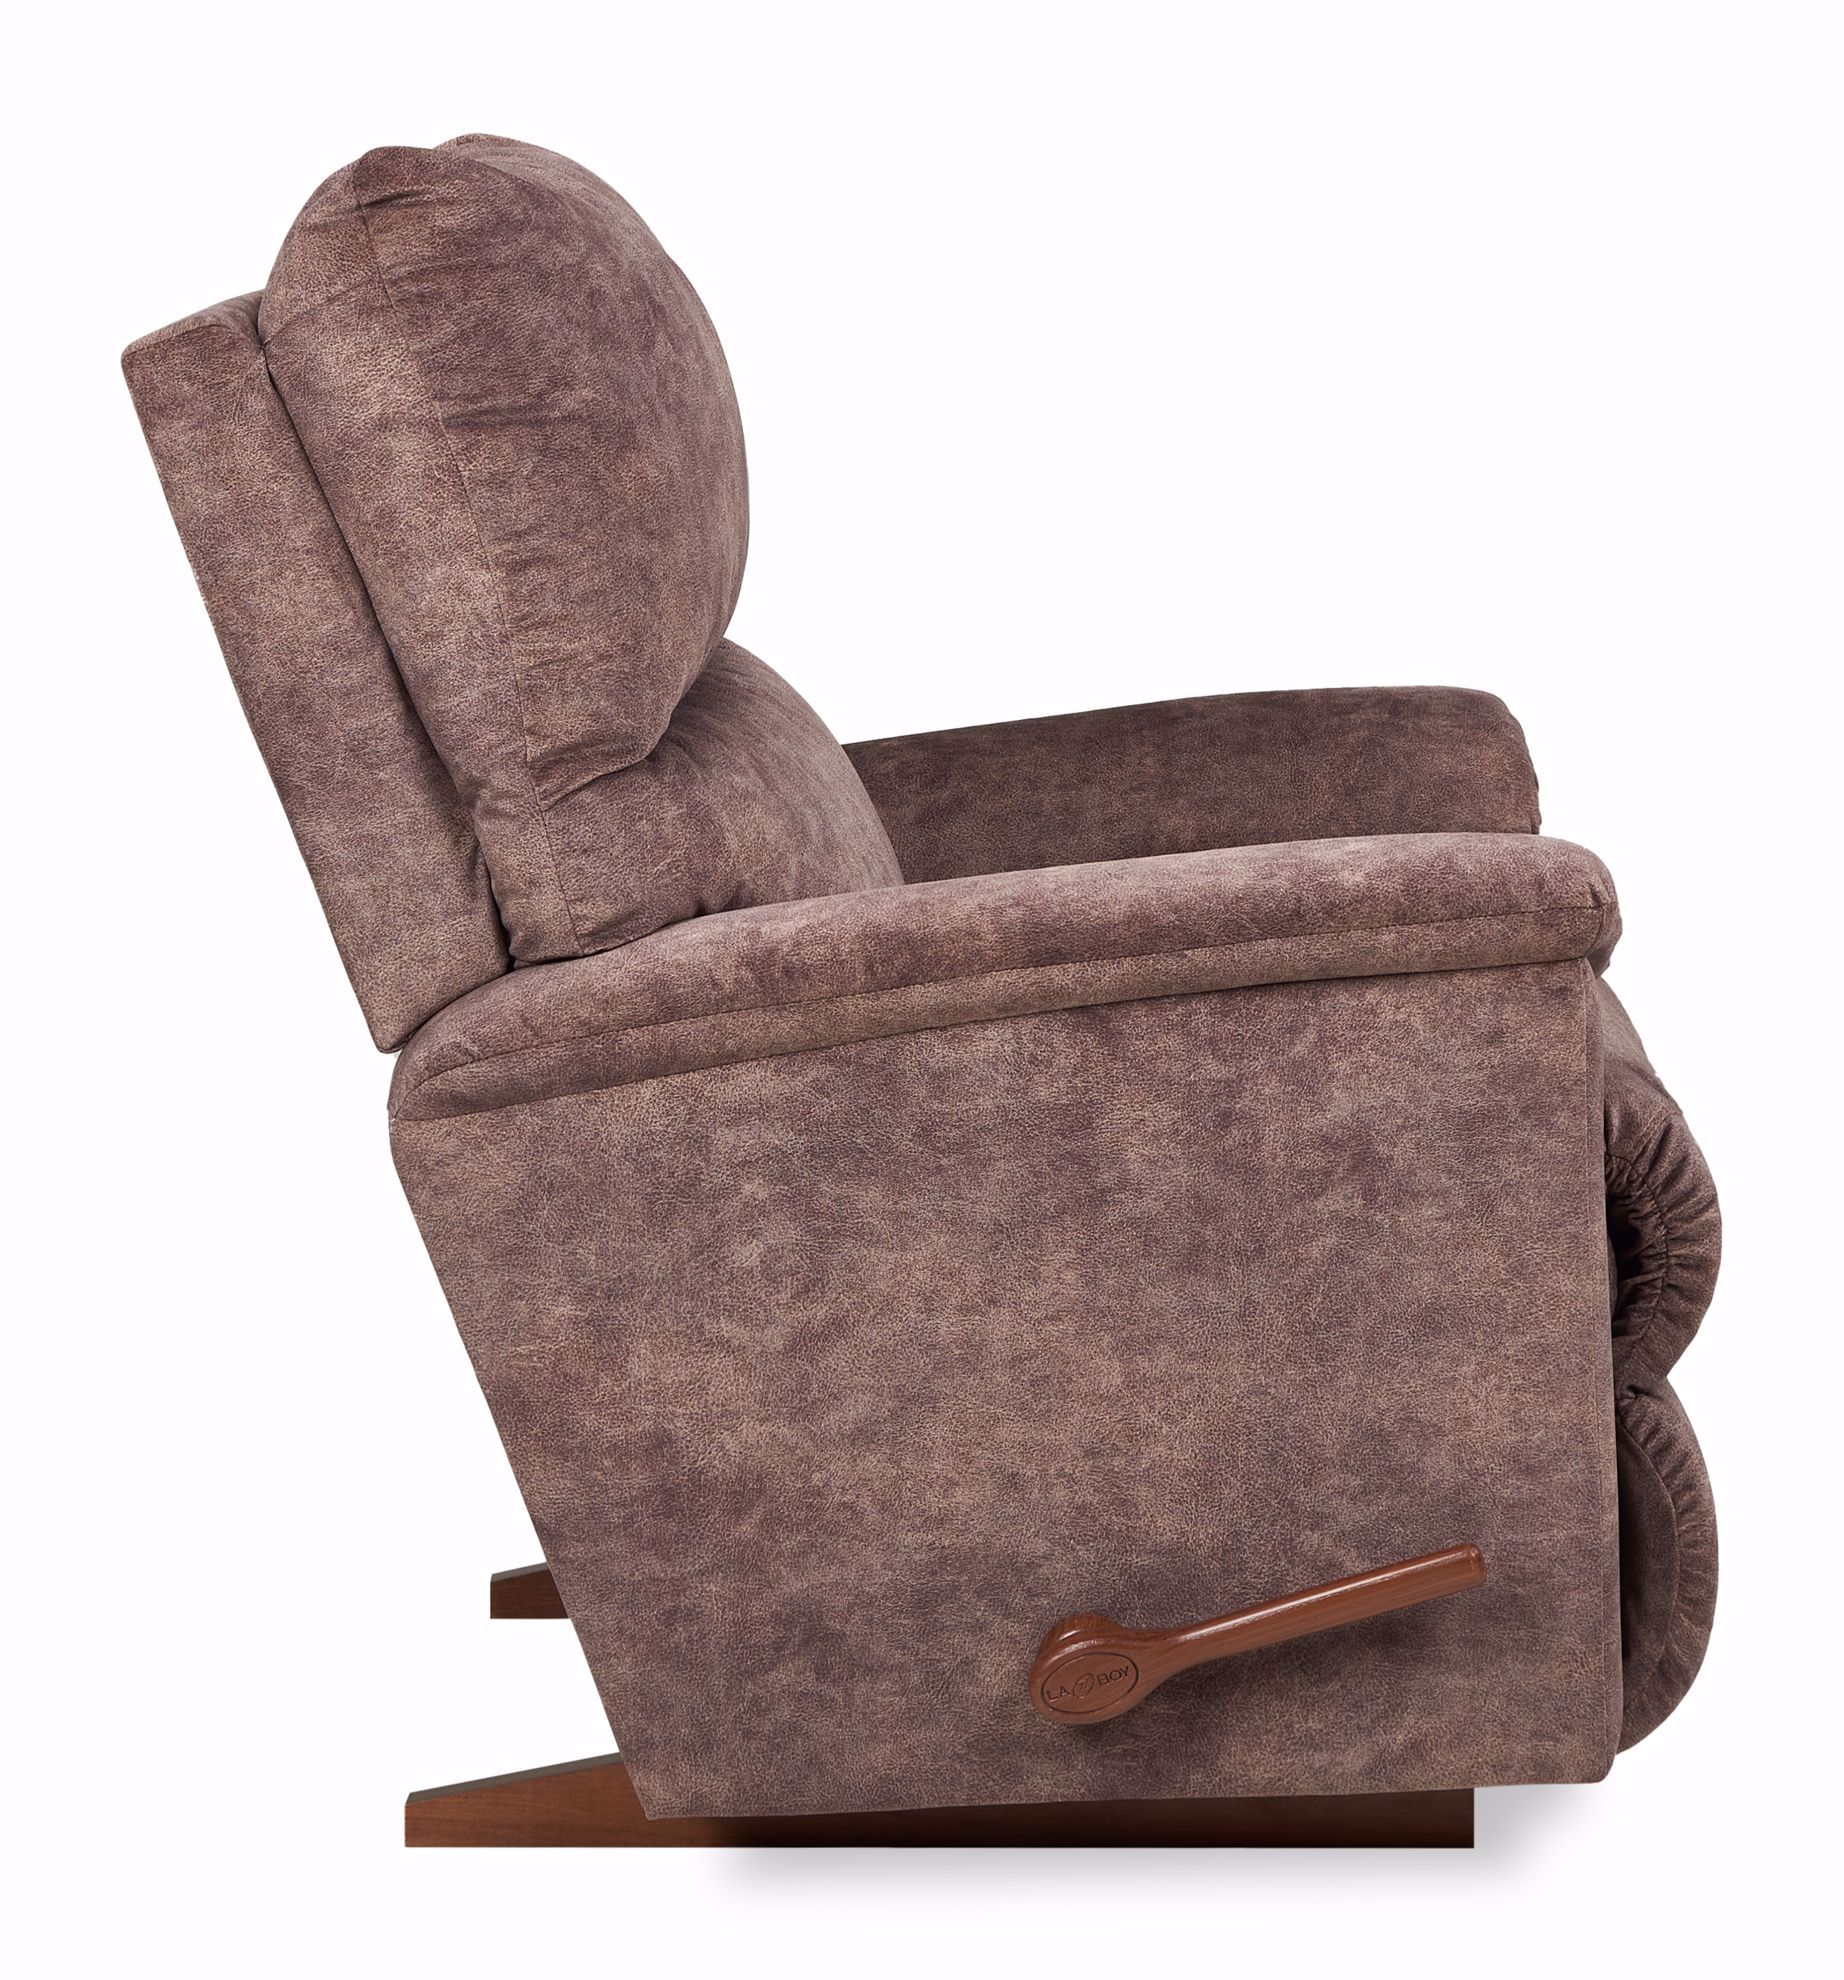 Picture of Brooks Ash Rocker Recliner